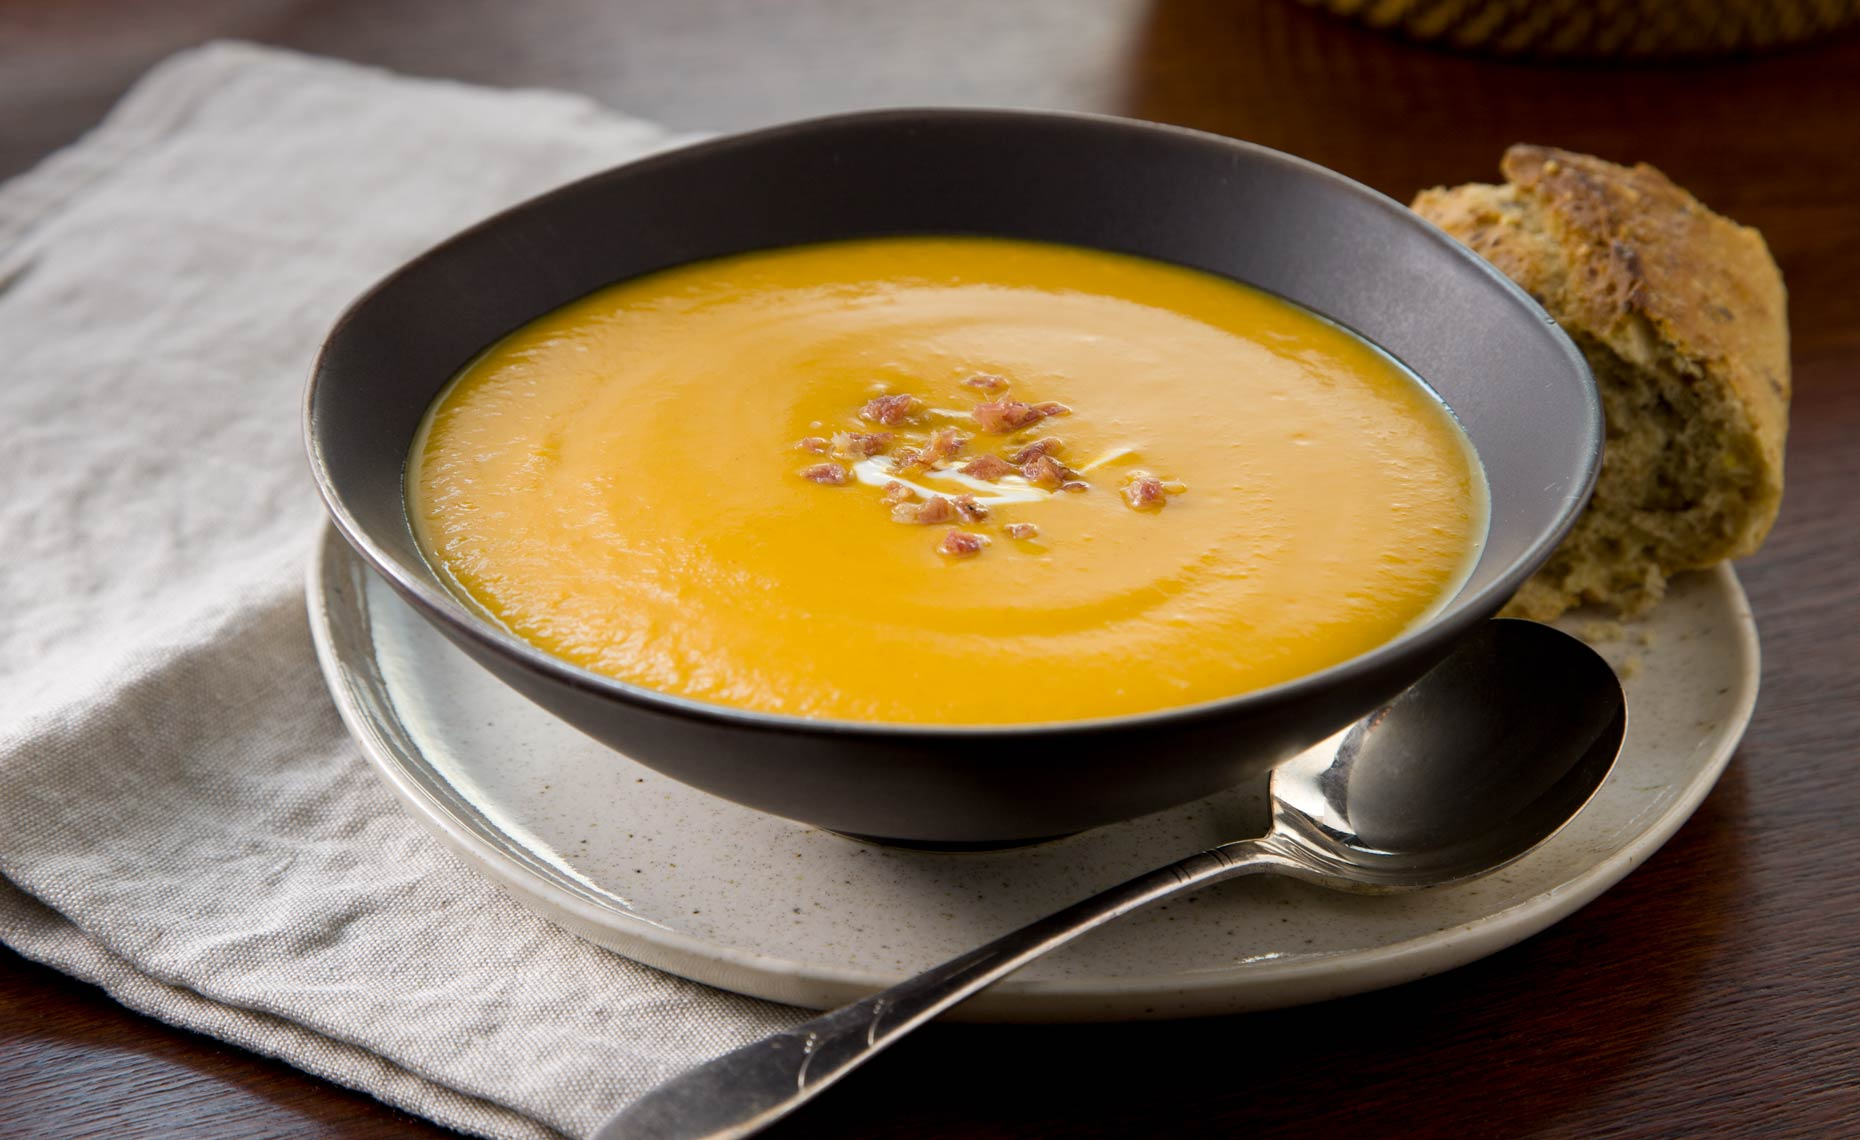 baltimore-food-photographers-soup-butternut-squash-04